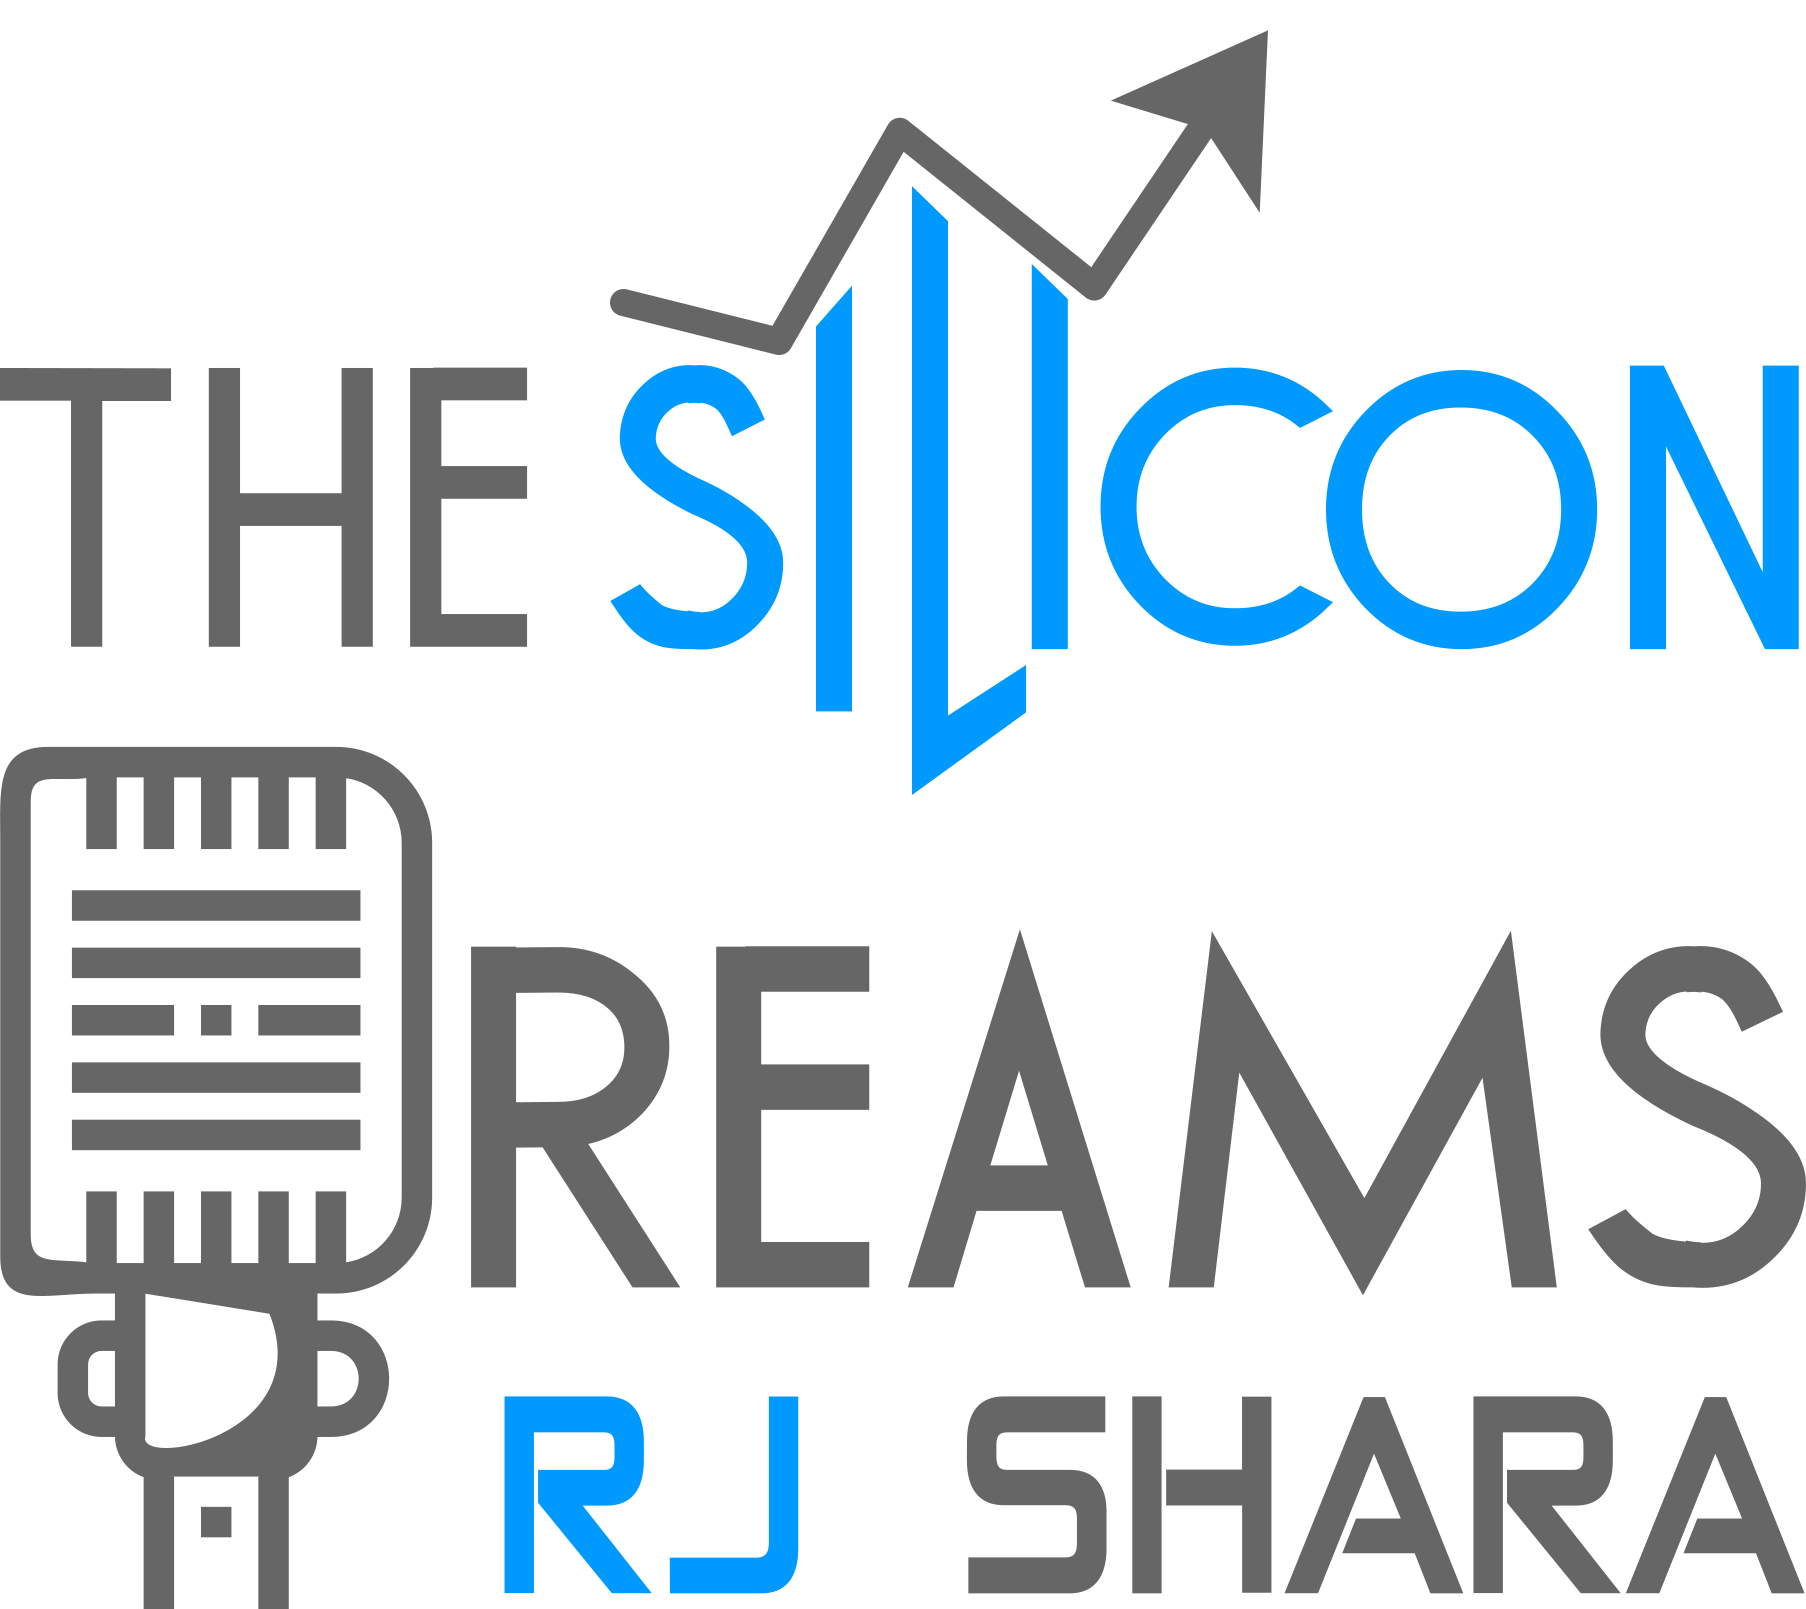 The Silicon Dreams - Press